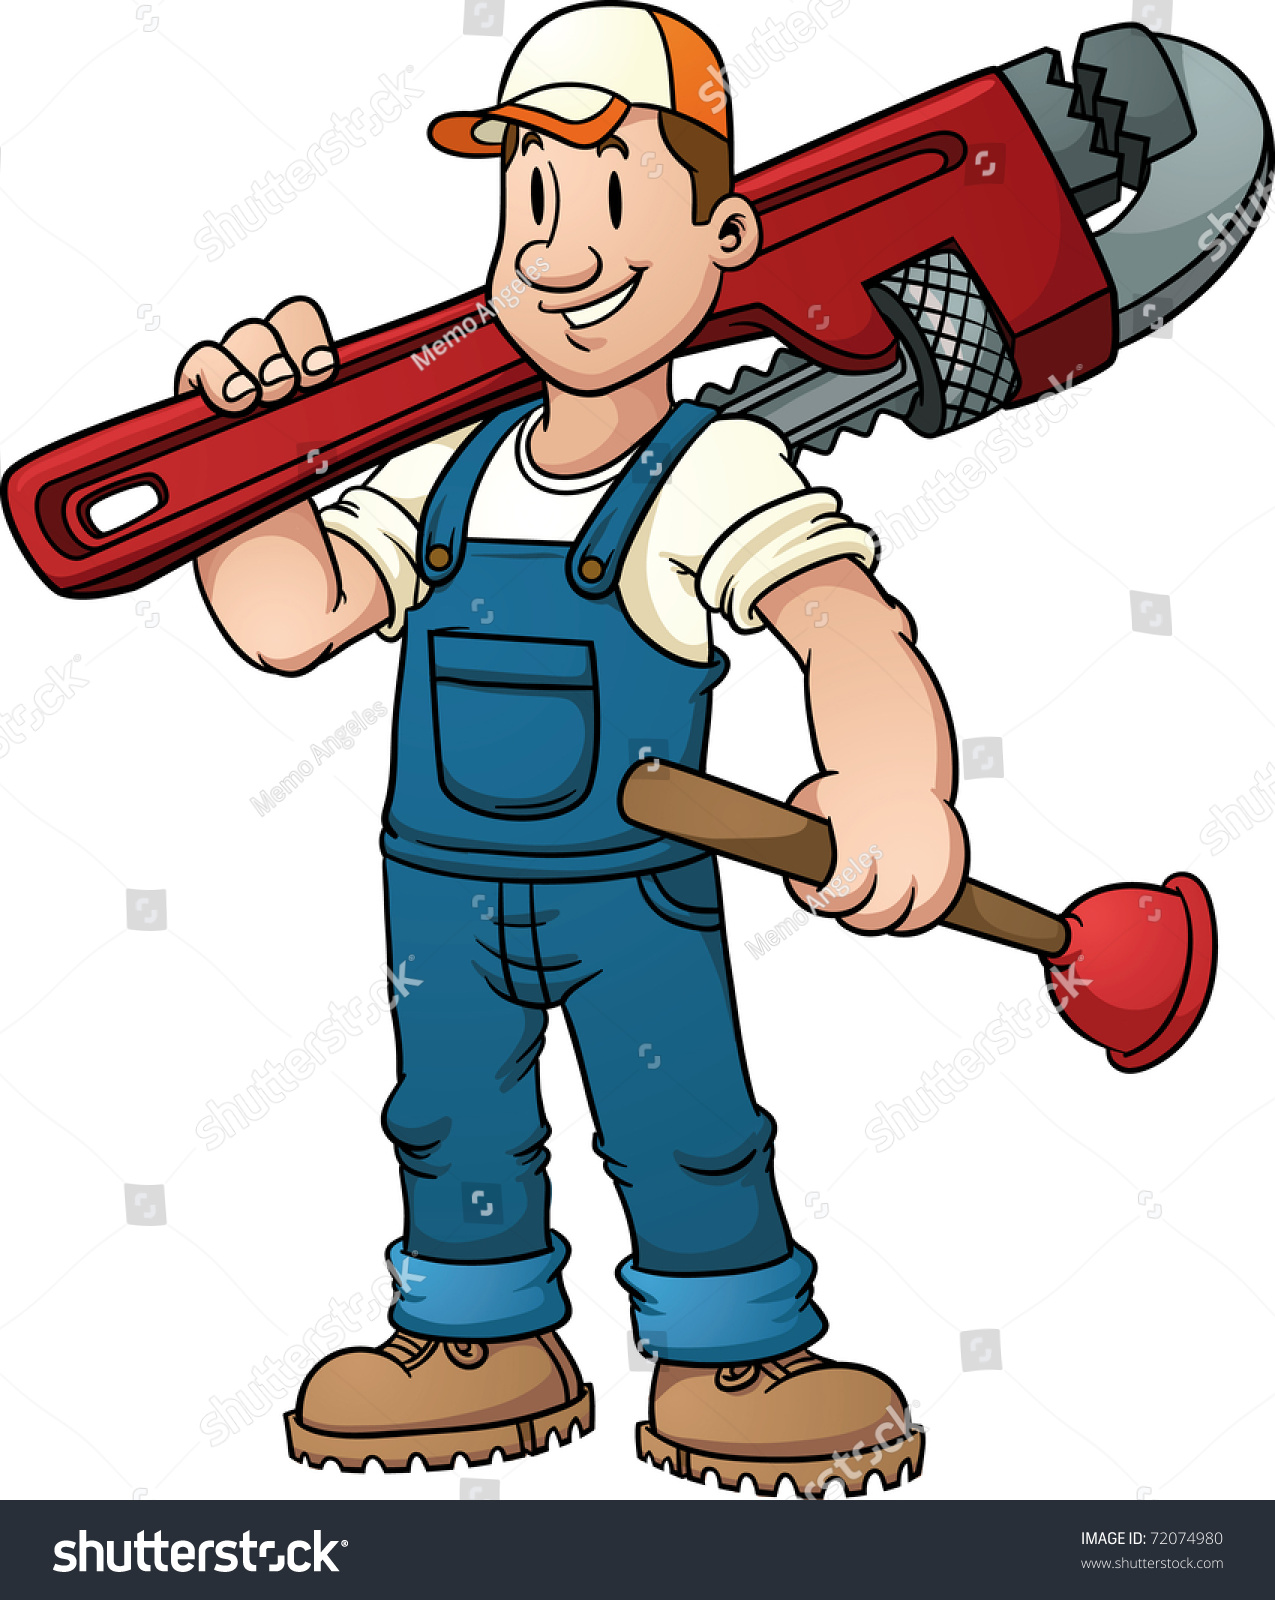 stock-vector-cartoon-plumber-holding-a-big-wrench-vector-illustration-with-simple-gradients-72074980.jpg